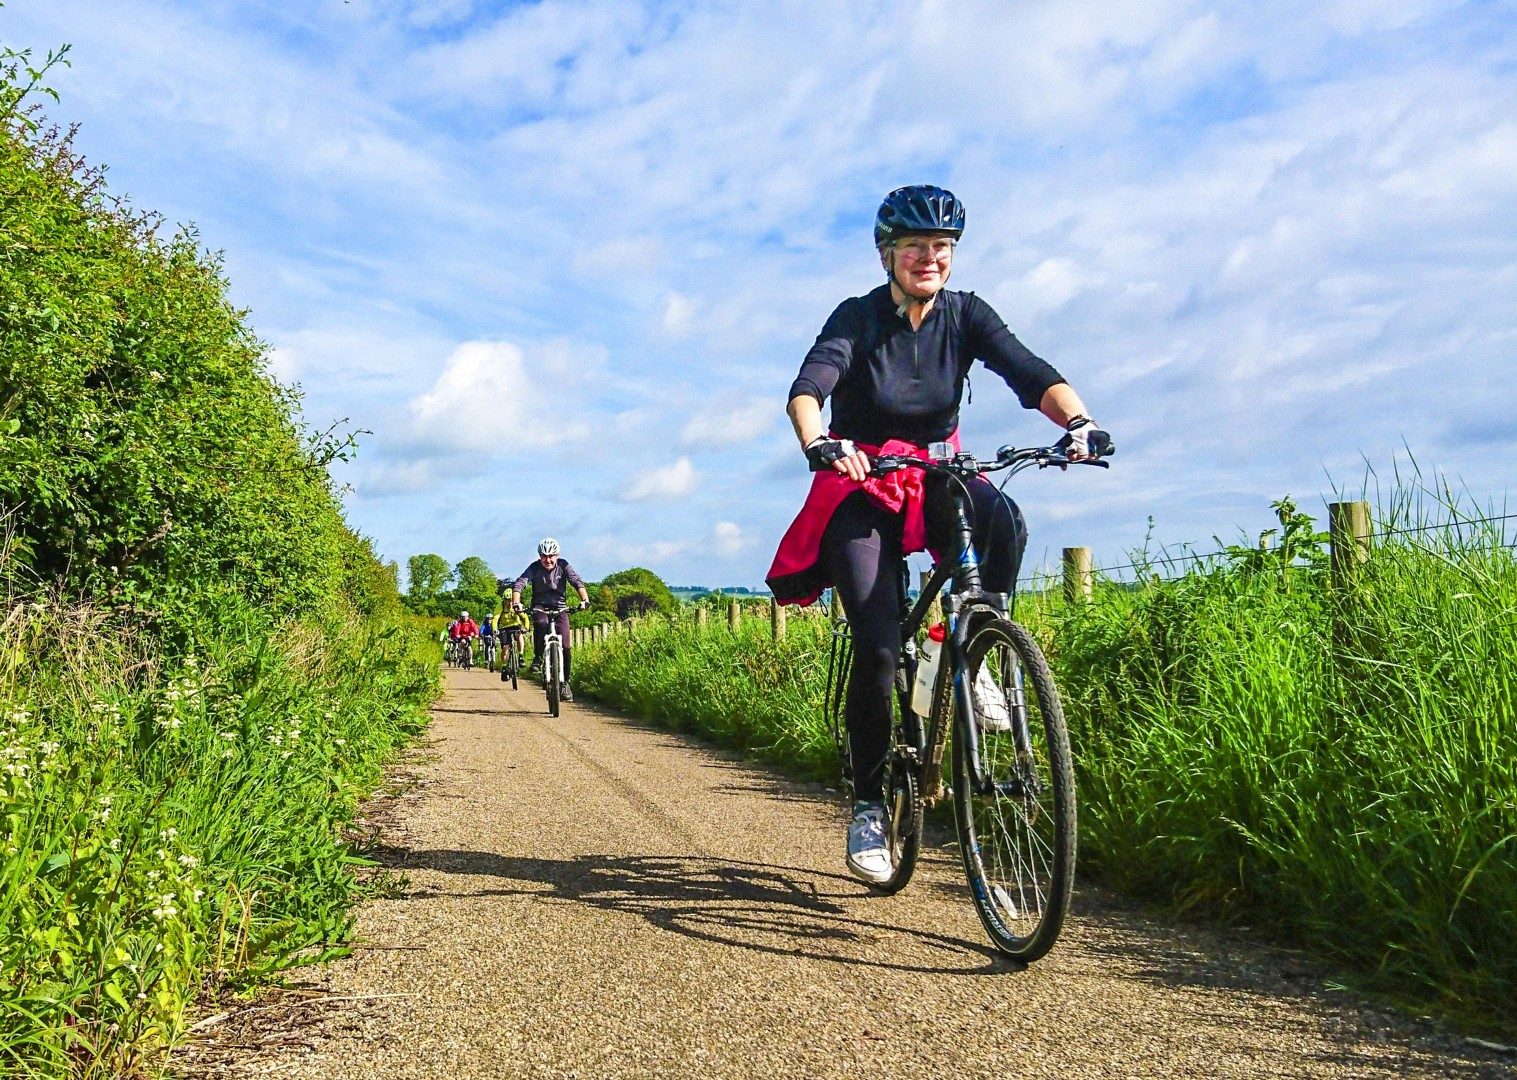 happy-cycling-for-all-ages-family-friends-north-britain-newcastle-alnmouth.jpg - UK - Northumberland - Alnmouth - Guided Leisure Cycling Holiday - Leisure Cycling